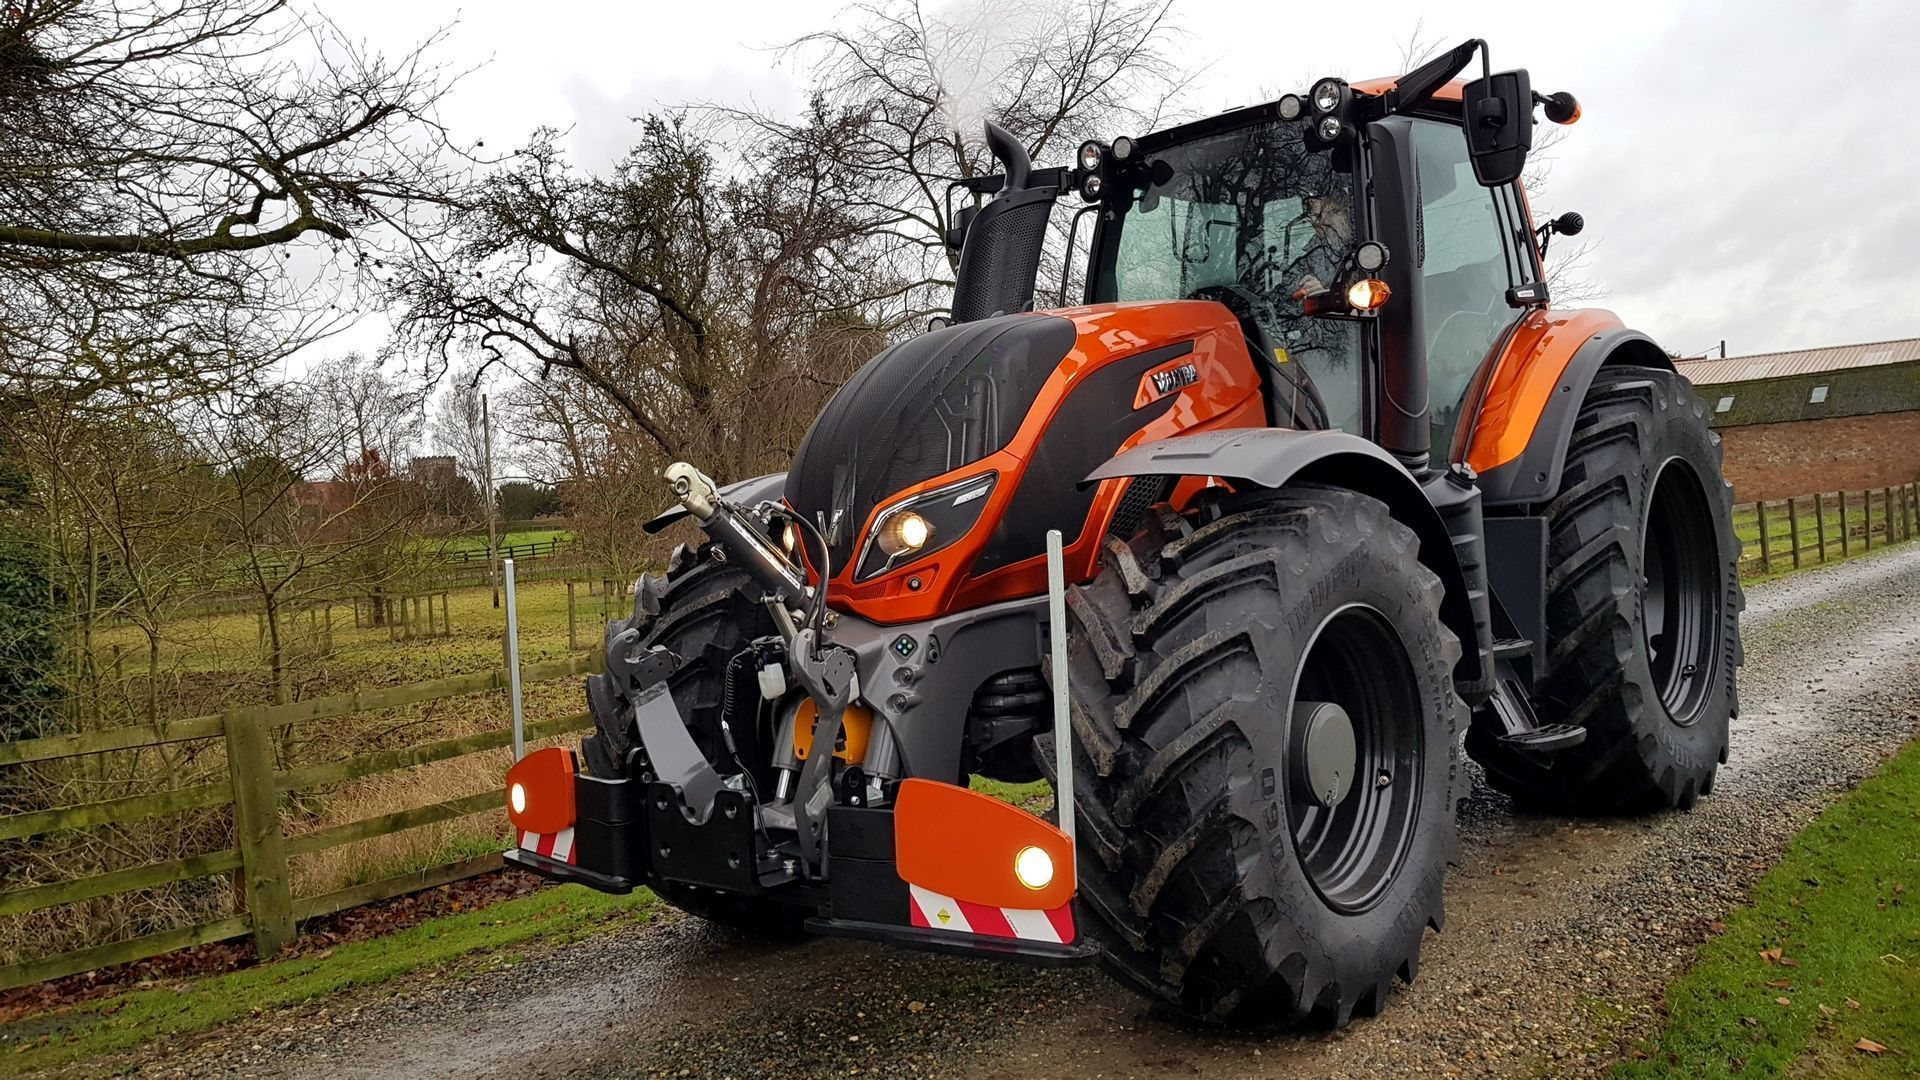 Valtra-t174-Candy-Orange-WL400-agribumper-frontweight-UK-4